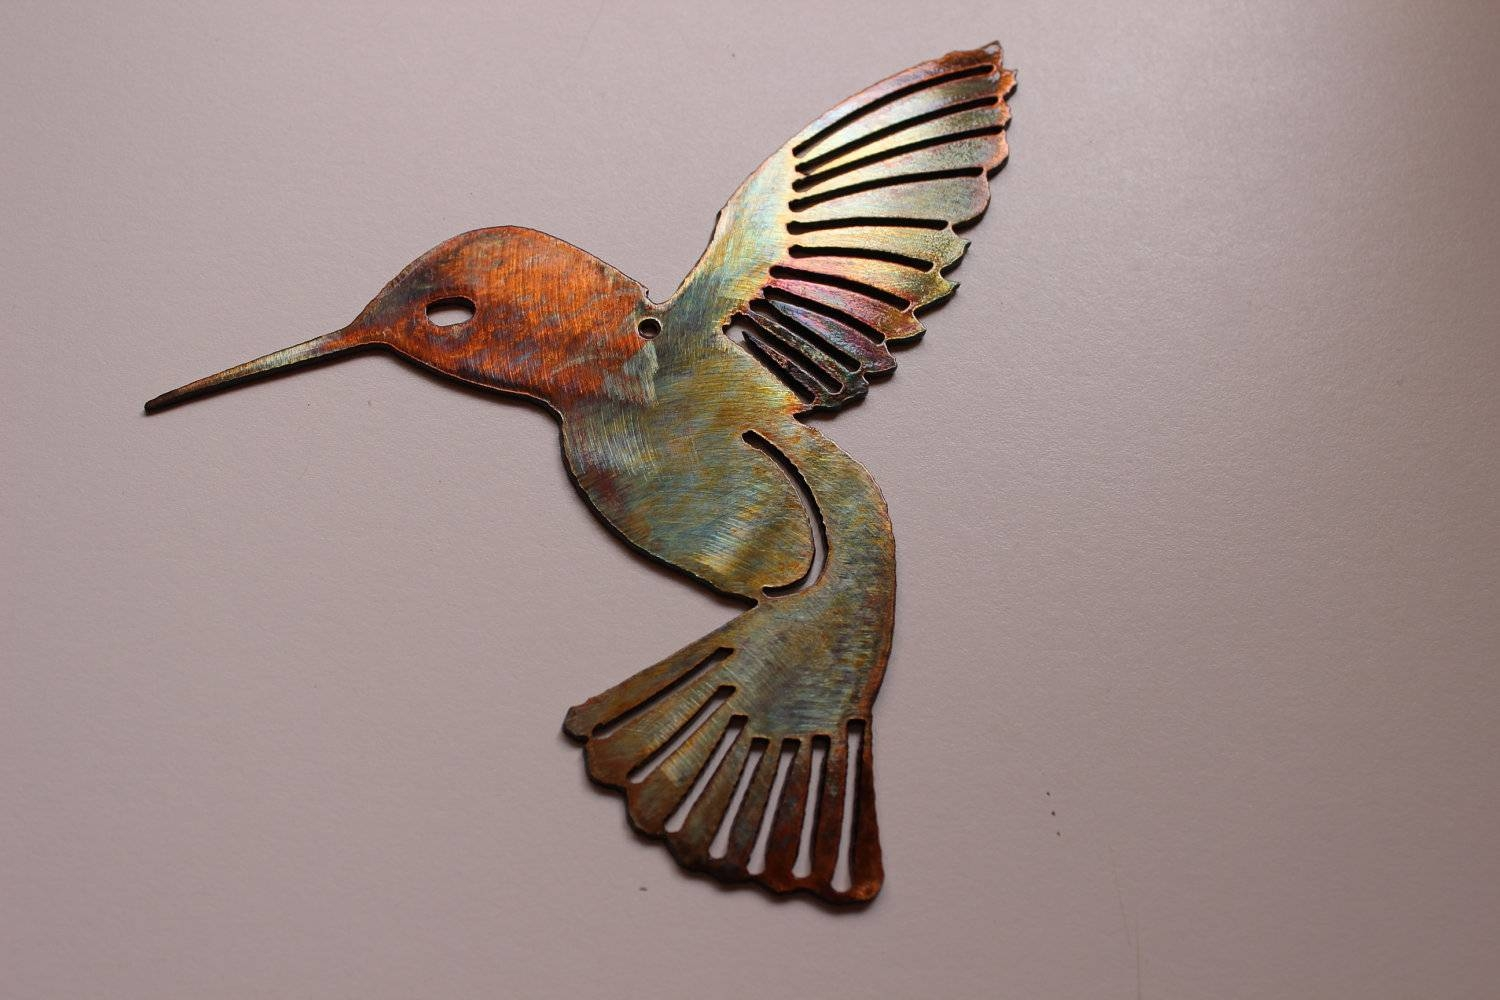 Wall Art Design Ideas: Metal Sculpture Hummingbird Wall Art Within Recent Stainless Steel Outdoor Wall Art (View 5 of 20)